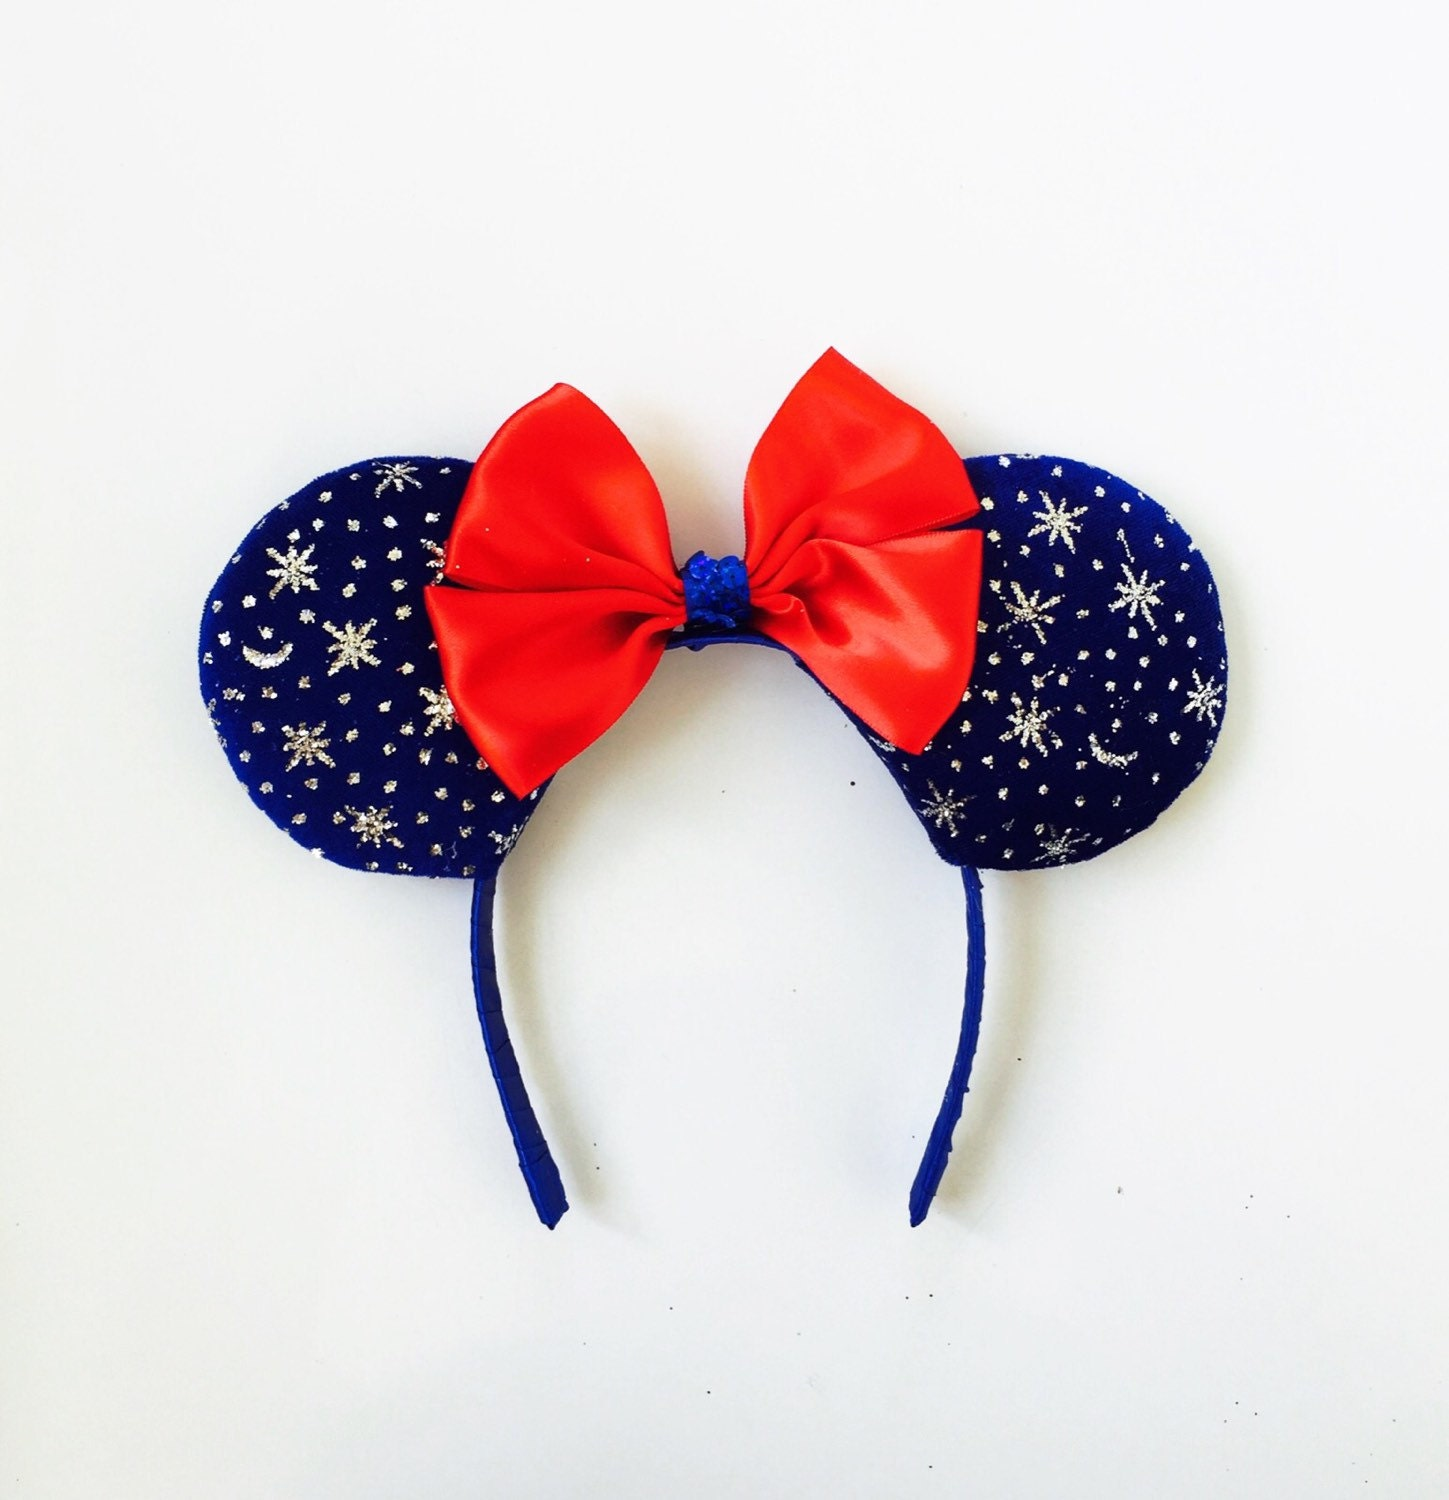 It's just an image of Tactueux Disney Character Ears